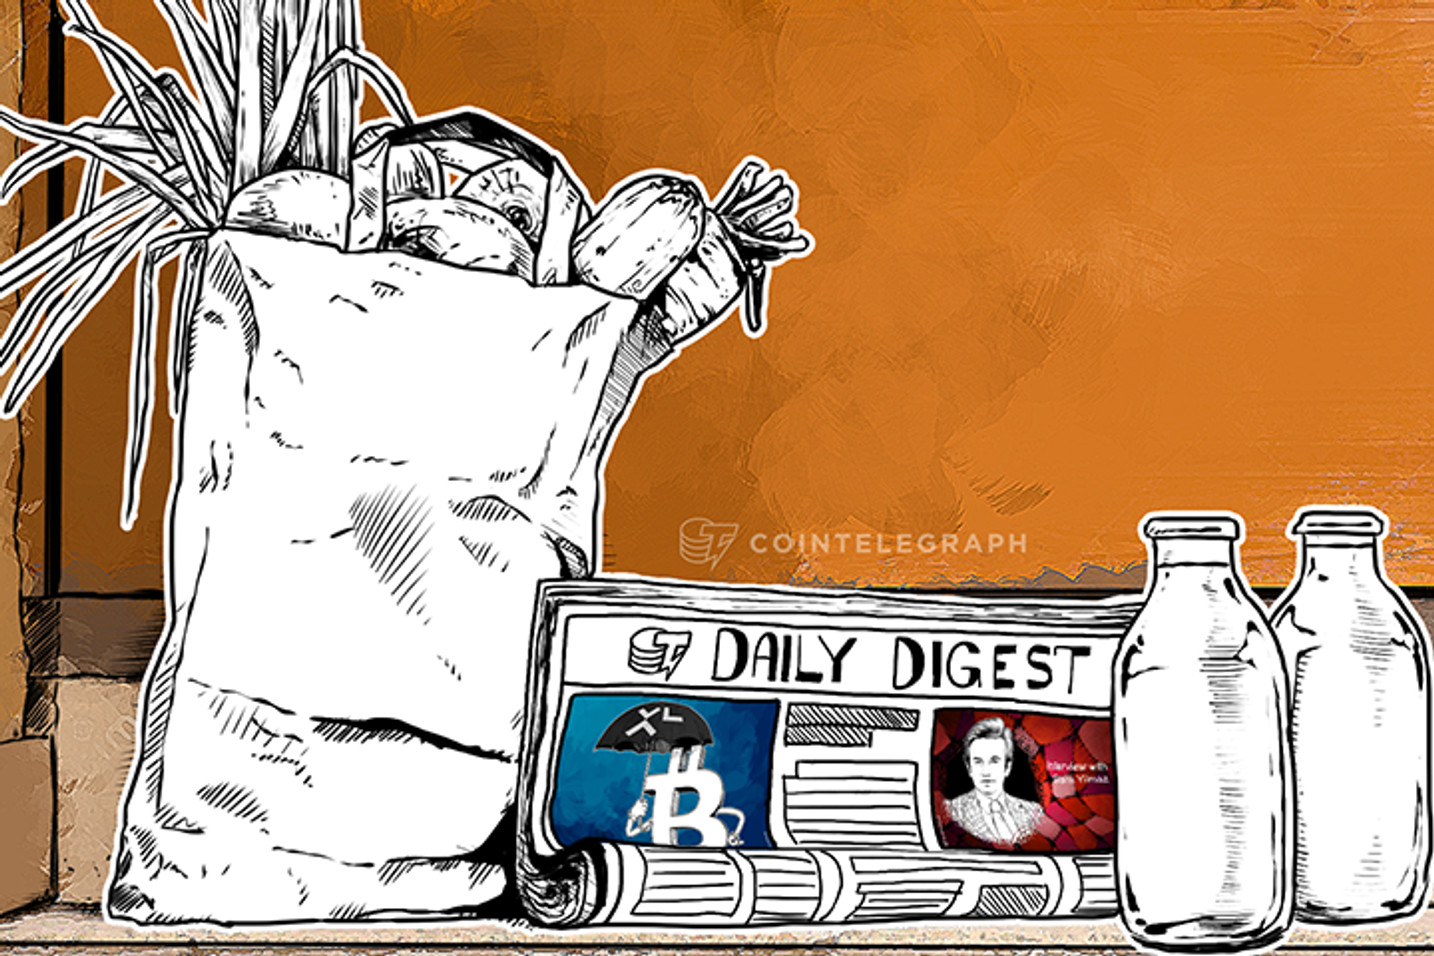 FEB 26 DIGEST: Londoners Can Now Pay Rent in Bitcoin, Revised BitLicense Gets 30 More Days